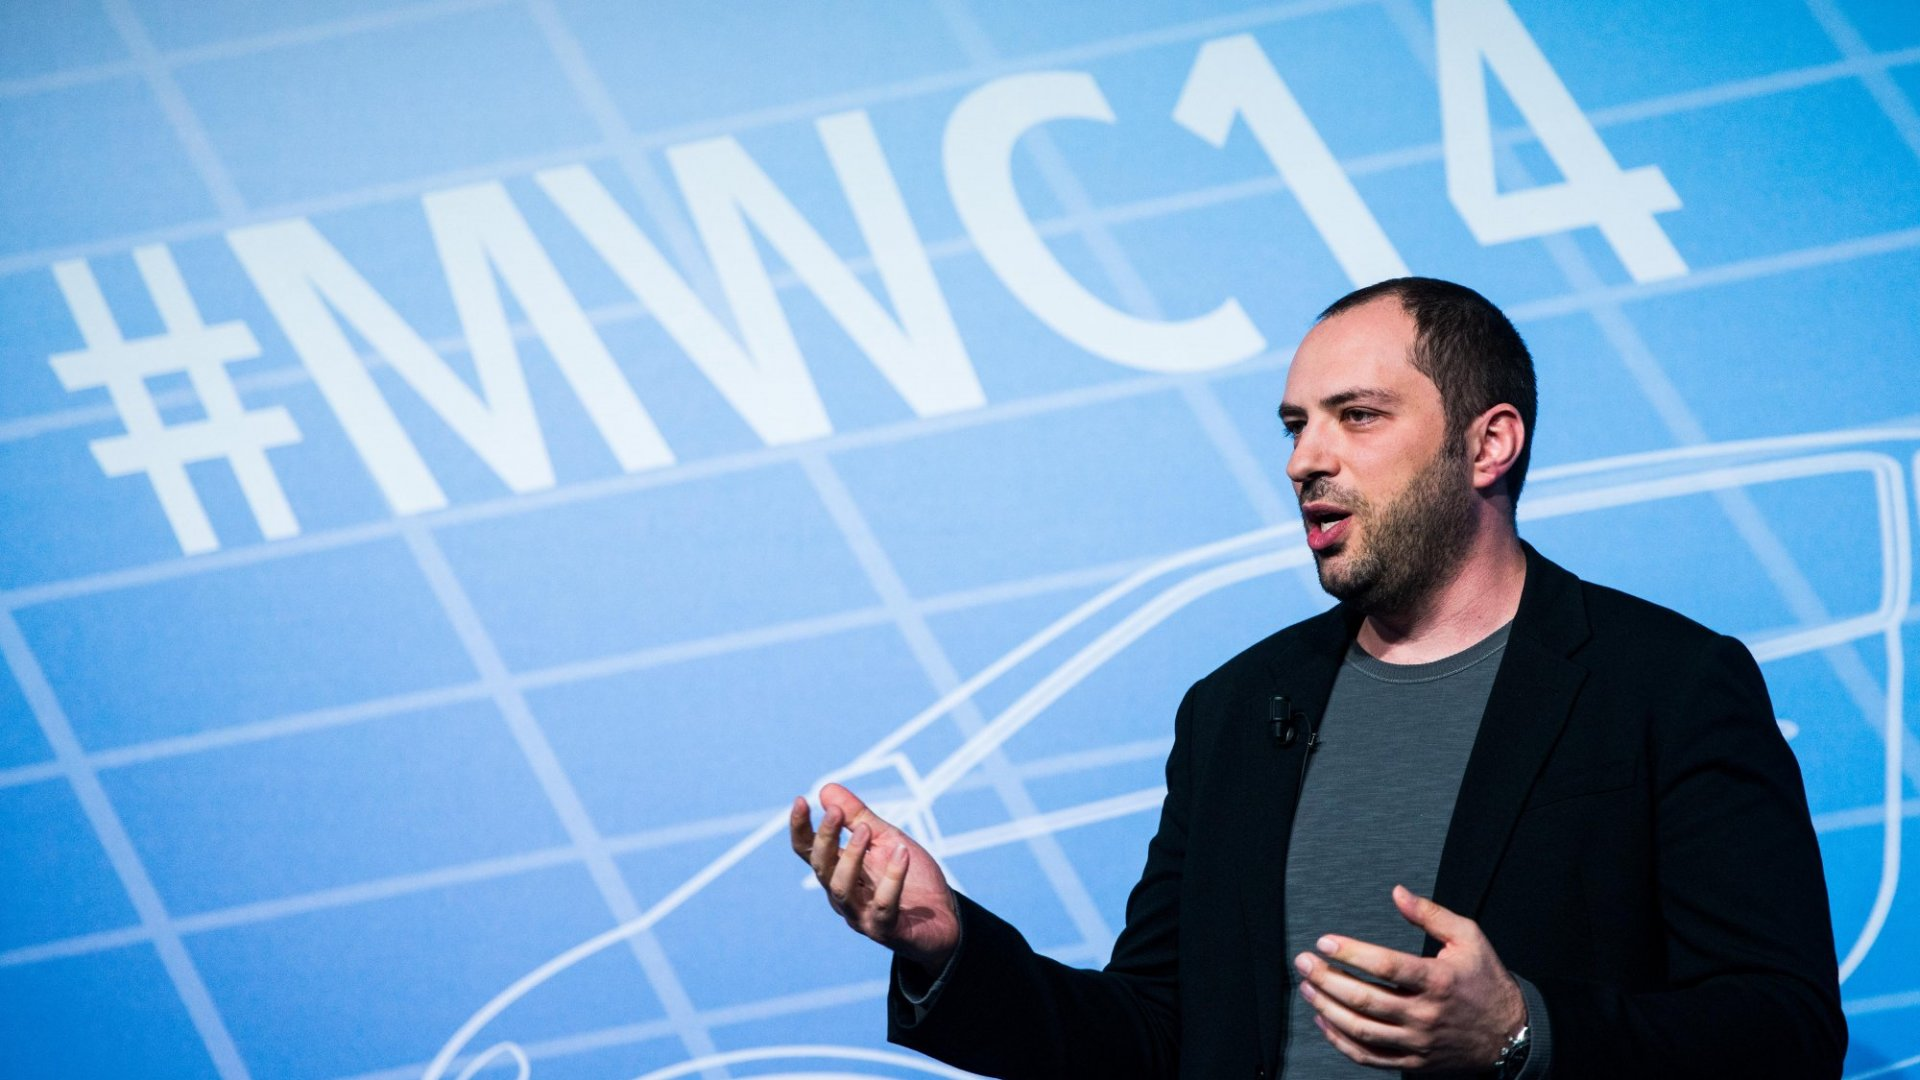 How Jan Koum Rose Up From Poverty to Sell His Business for $22B